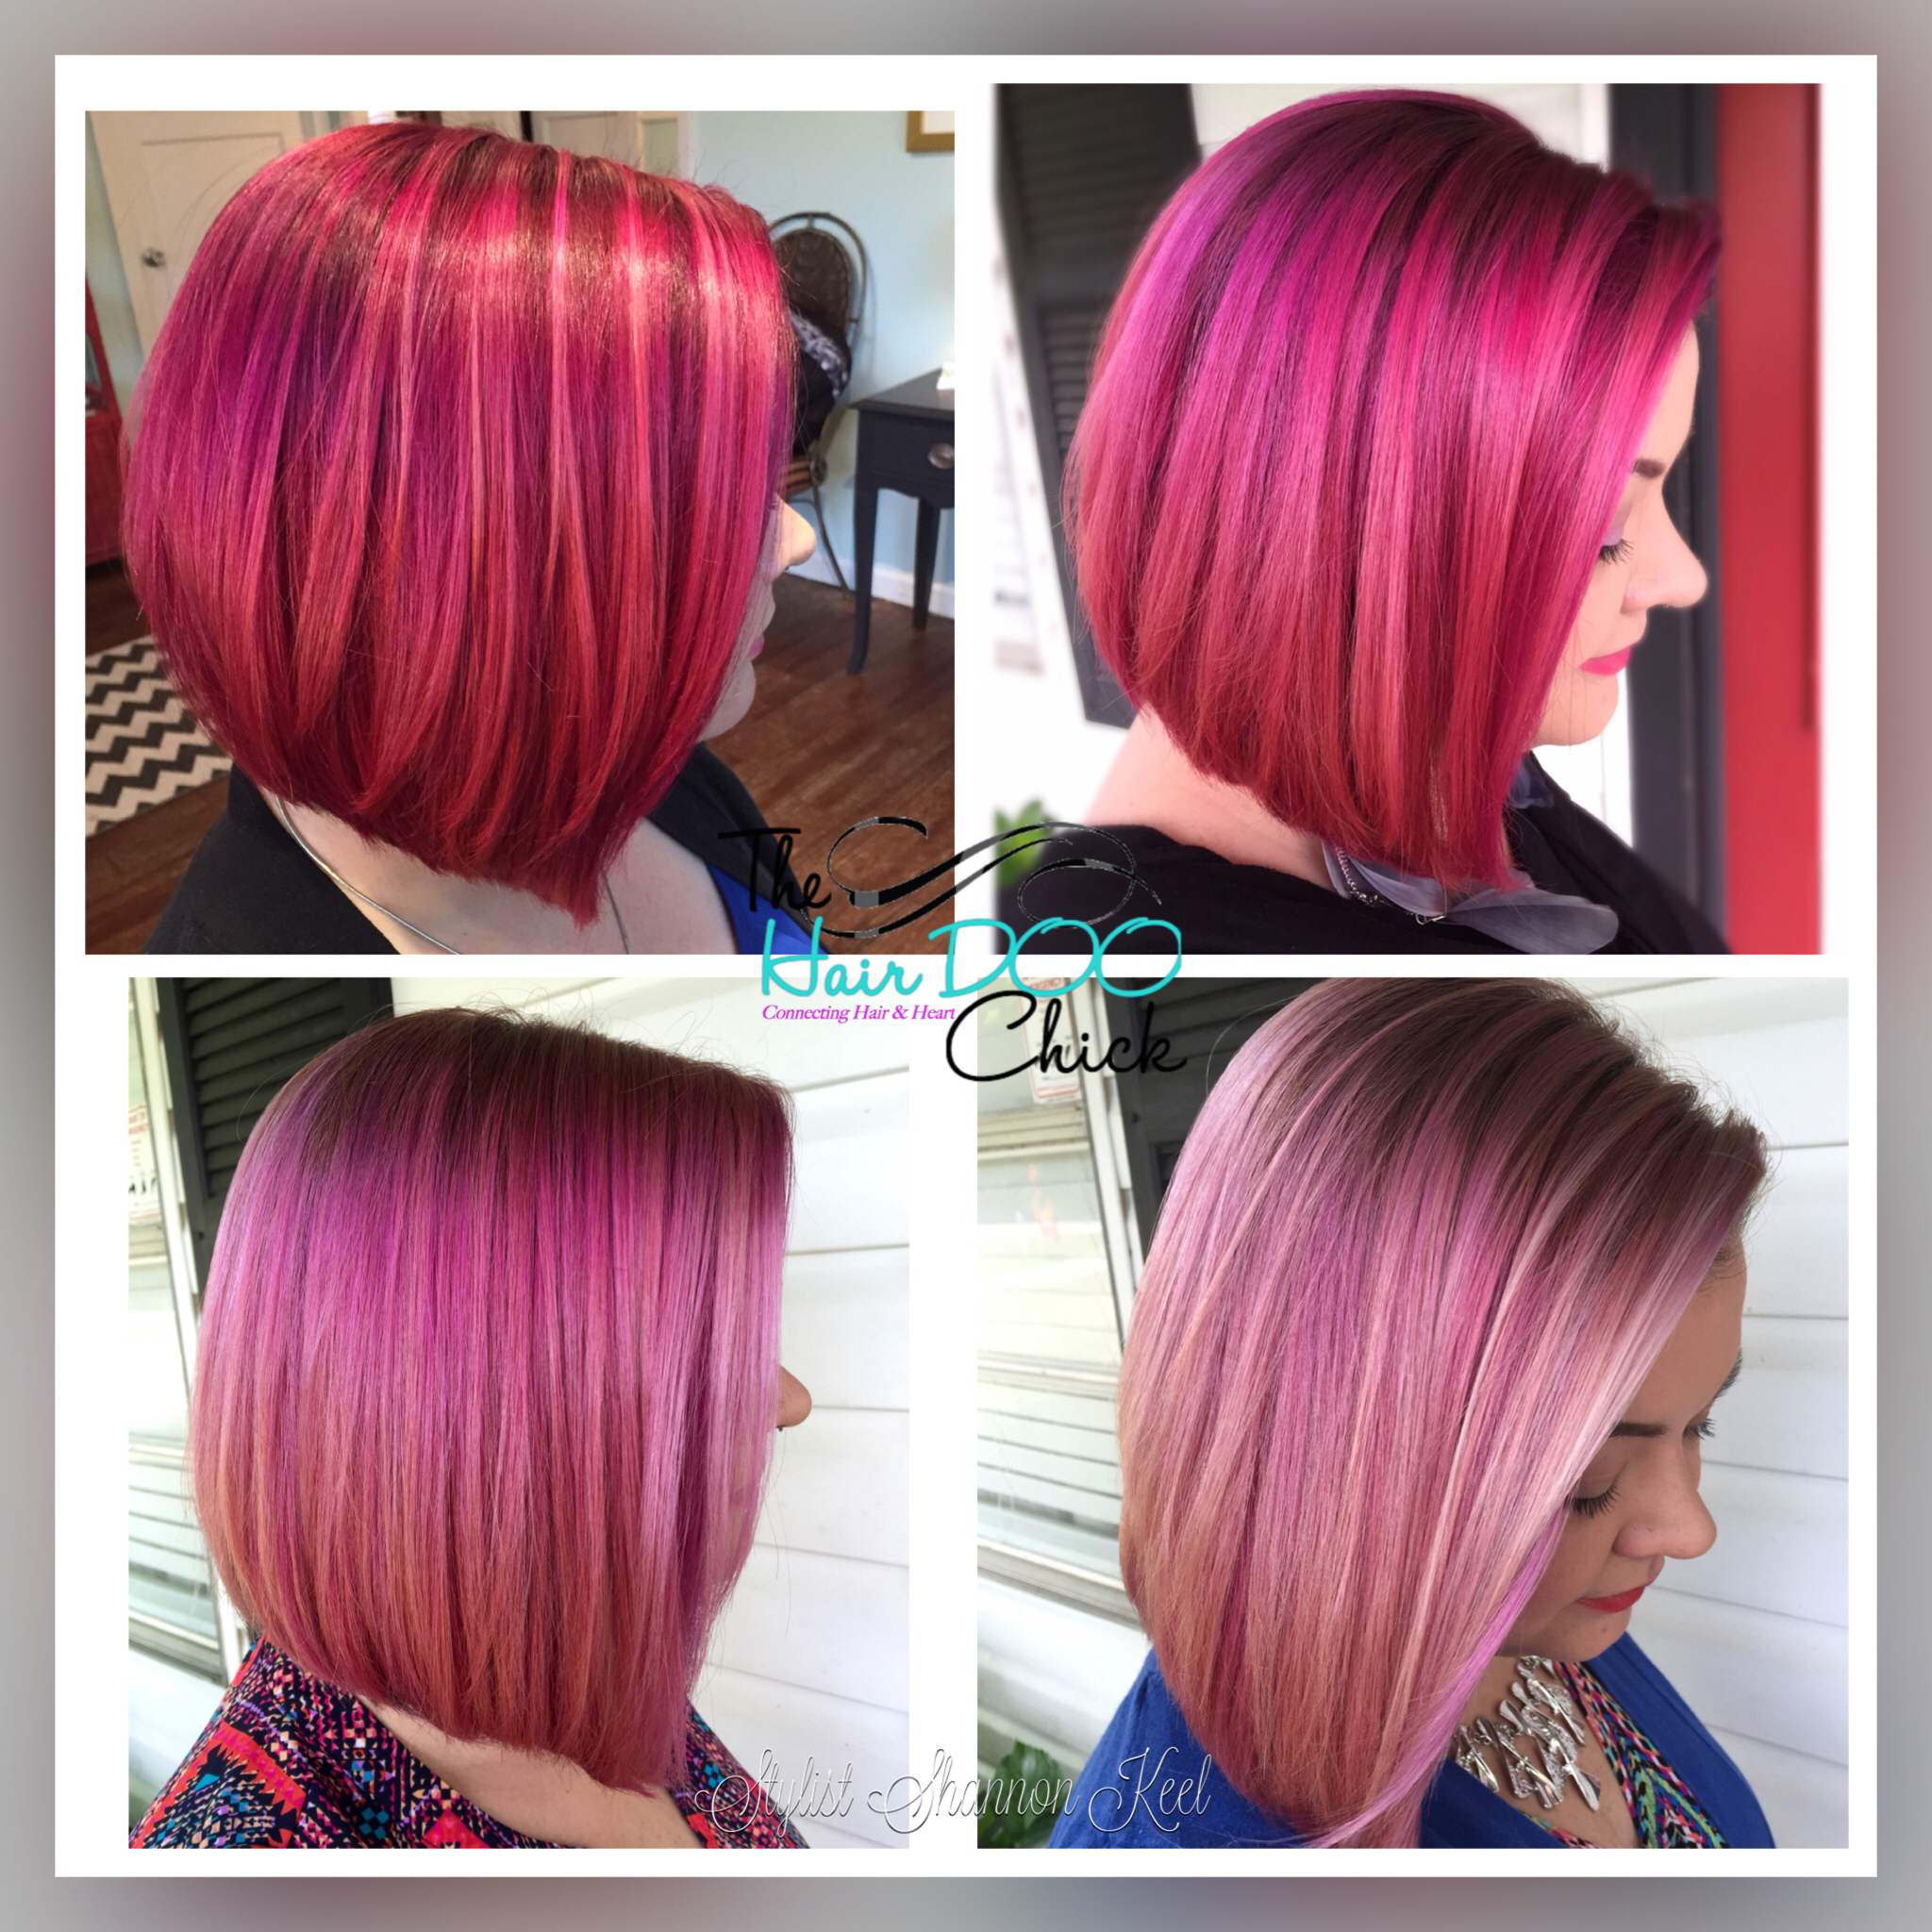 The Four-Week Evolution of Pink Hair